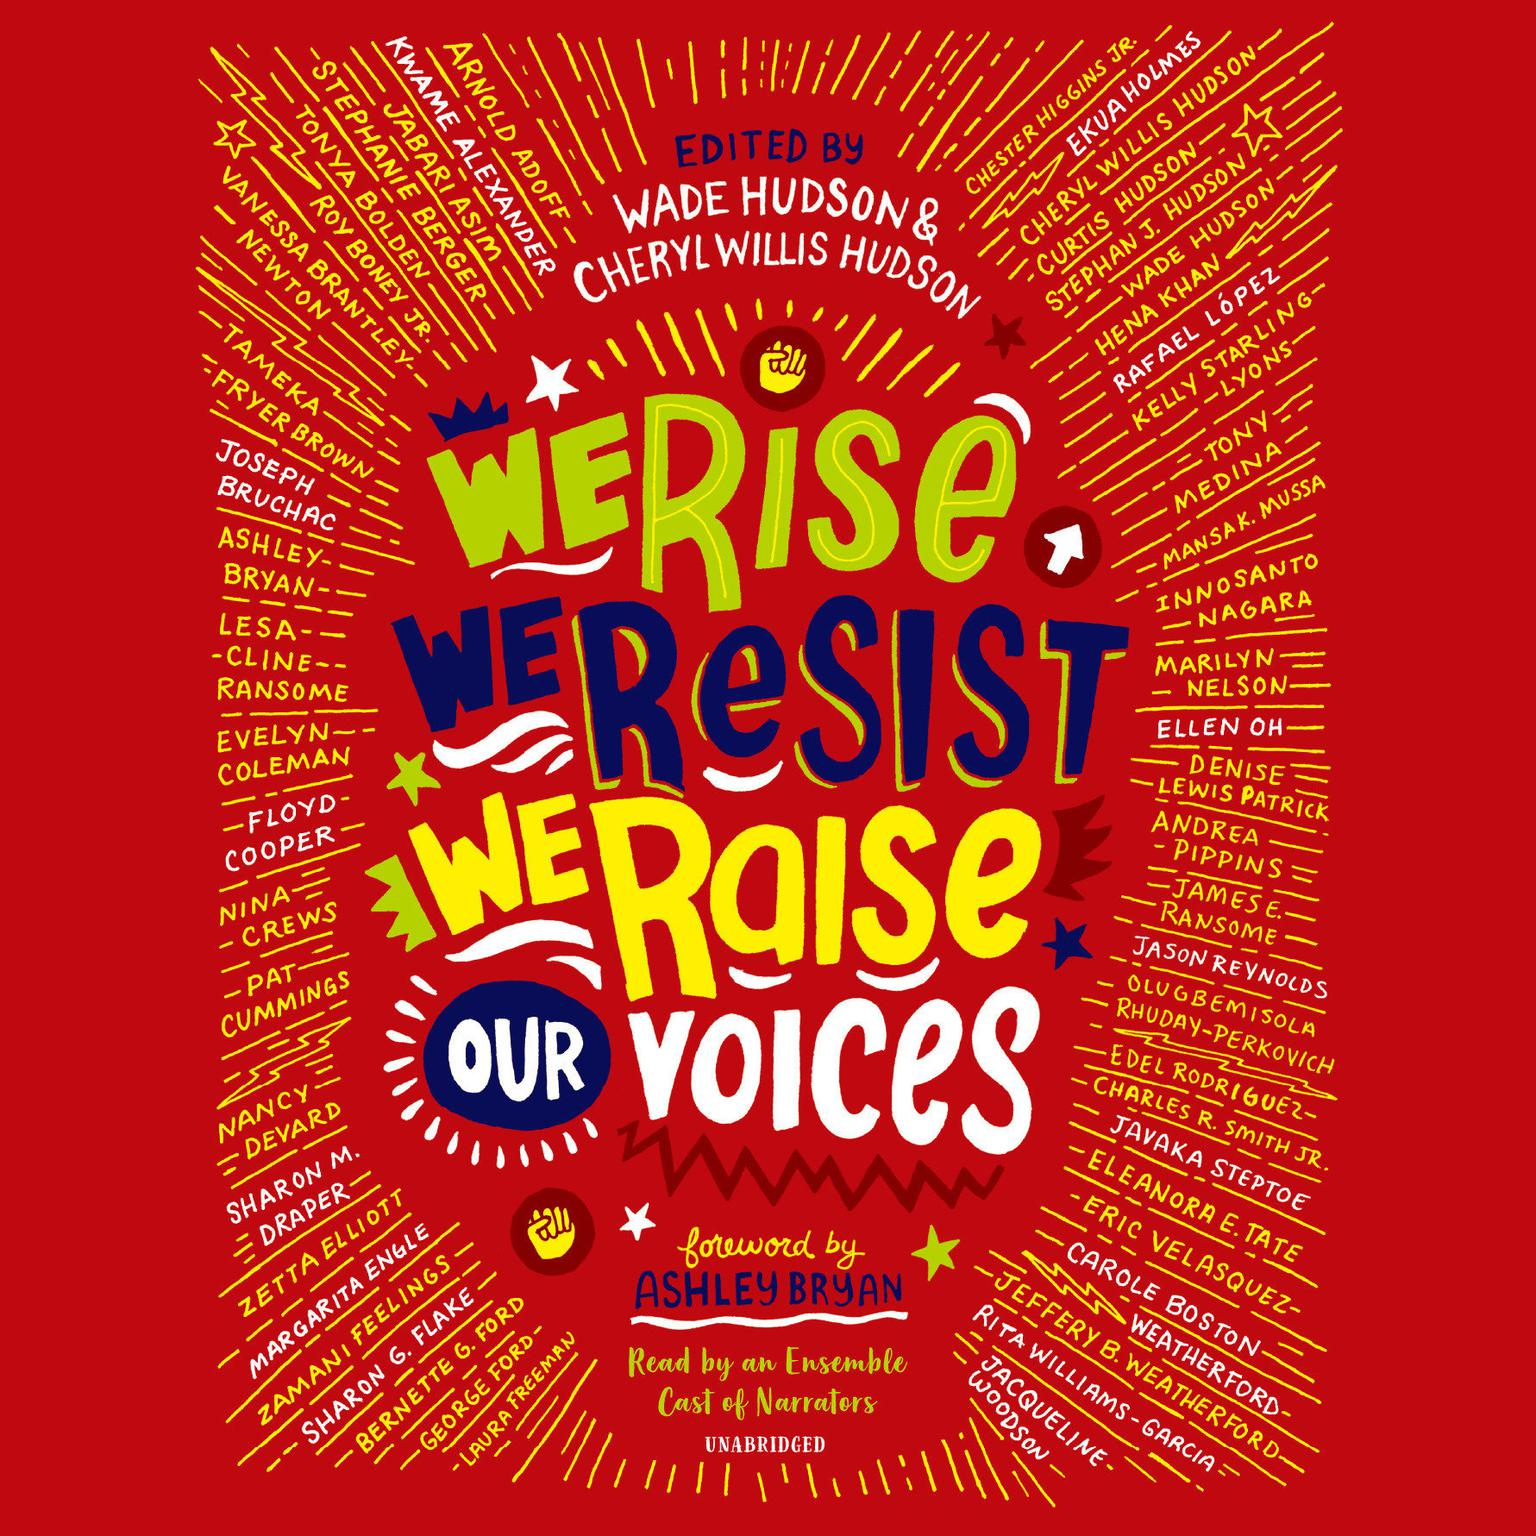 We Rise, We Resist, We Raise Our Voices Audiobook, by Cheryl Willis Hudson